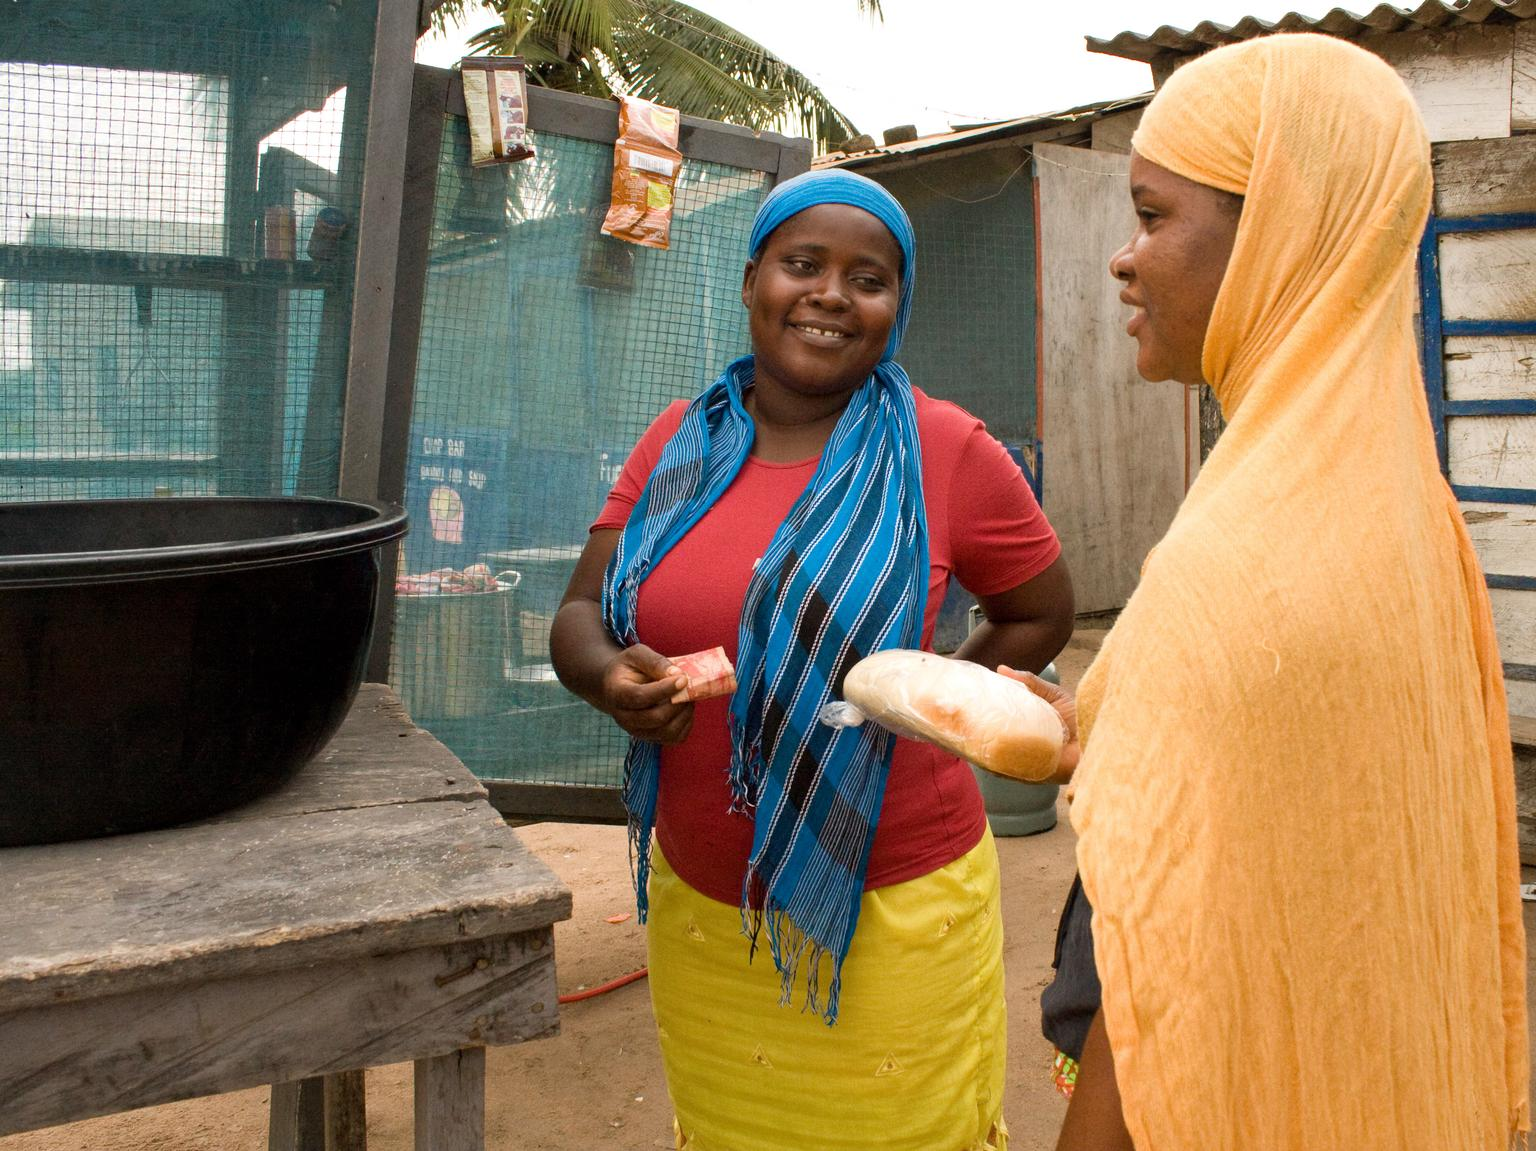 A market stall owner talks to a customer